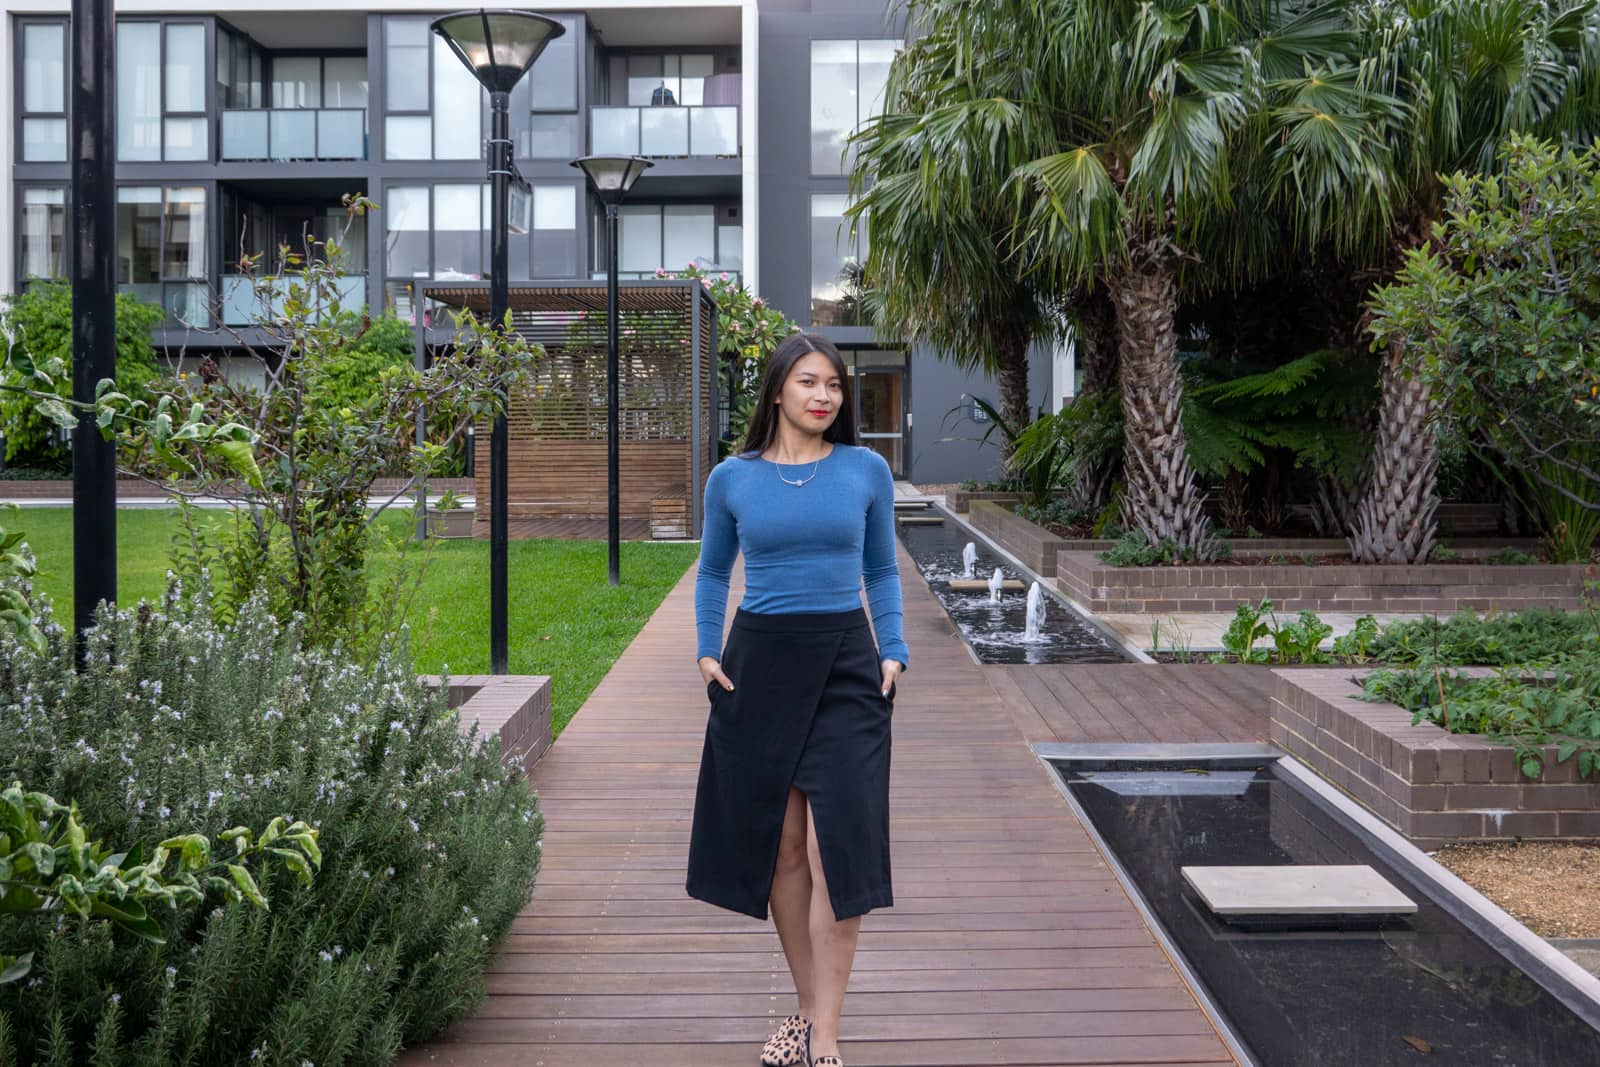 The same woman in other photos on this page, wearing the same outfit. She is standing facing the camera and has her hands in her skirt pockets. She's standing on a wooden pathway with brick-bordered gardens in the background, and an apartment building with frosted glass balconies